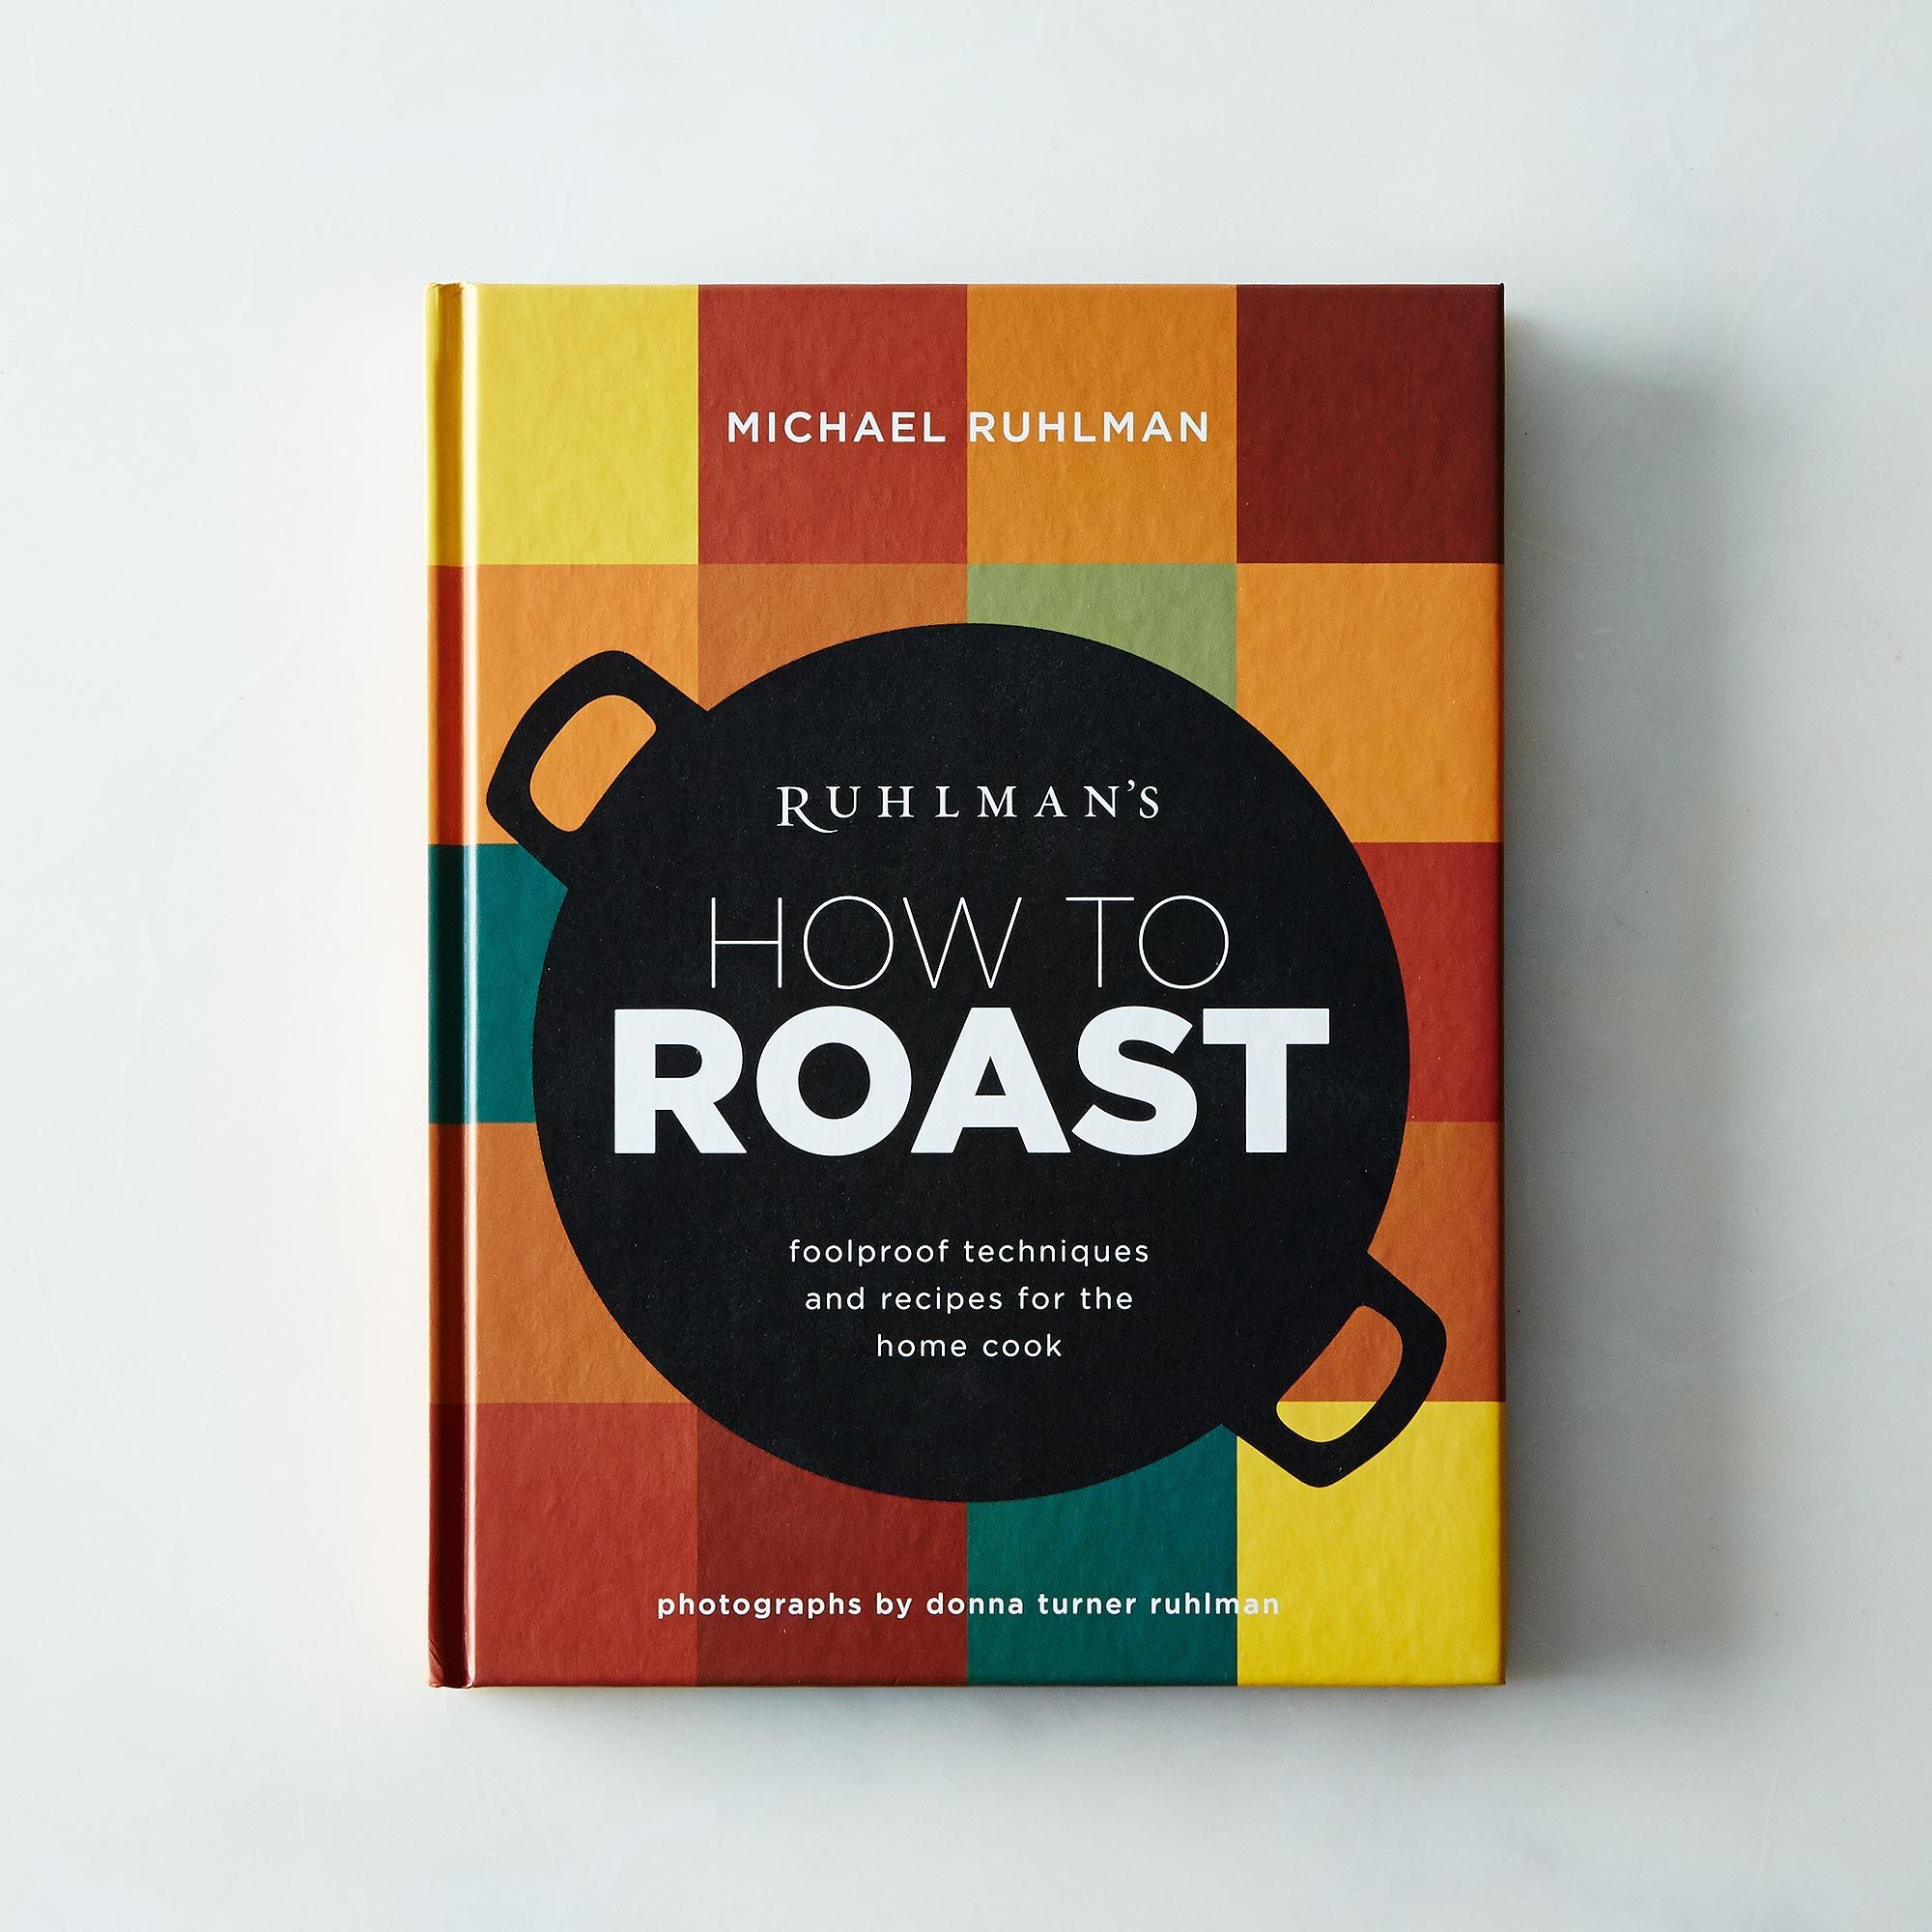 A153713a bf0e 43fa afe1 b43f0de664fa  2014 1024 hachette how to roast 001